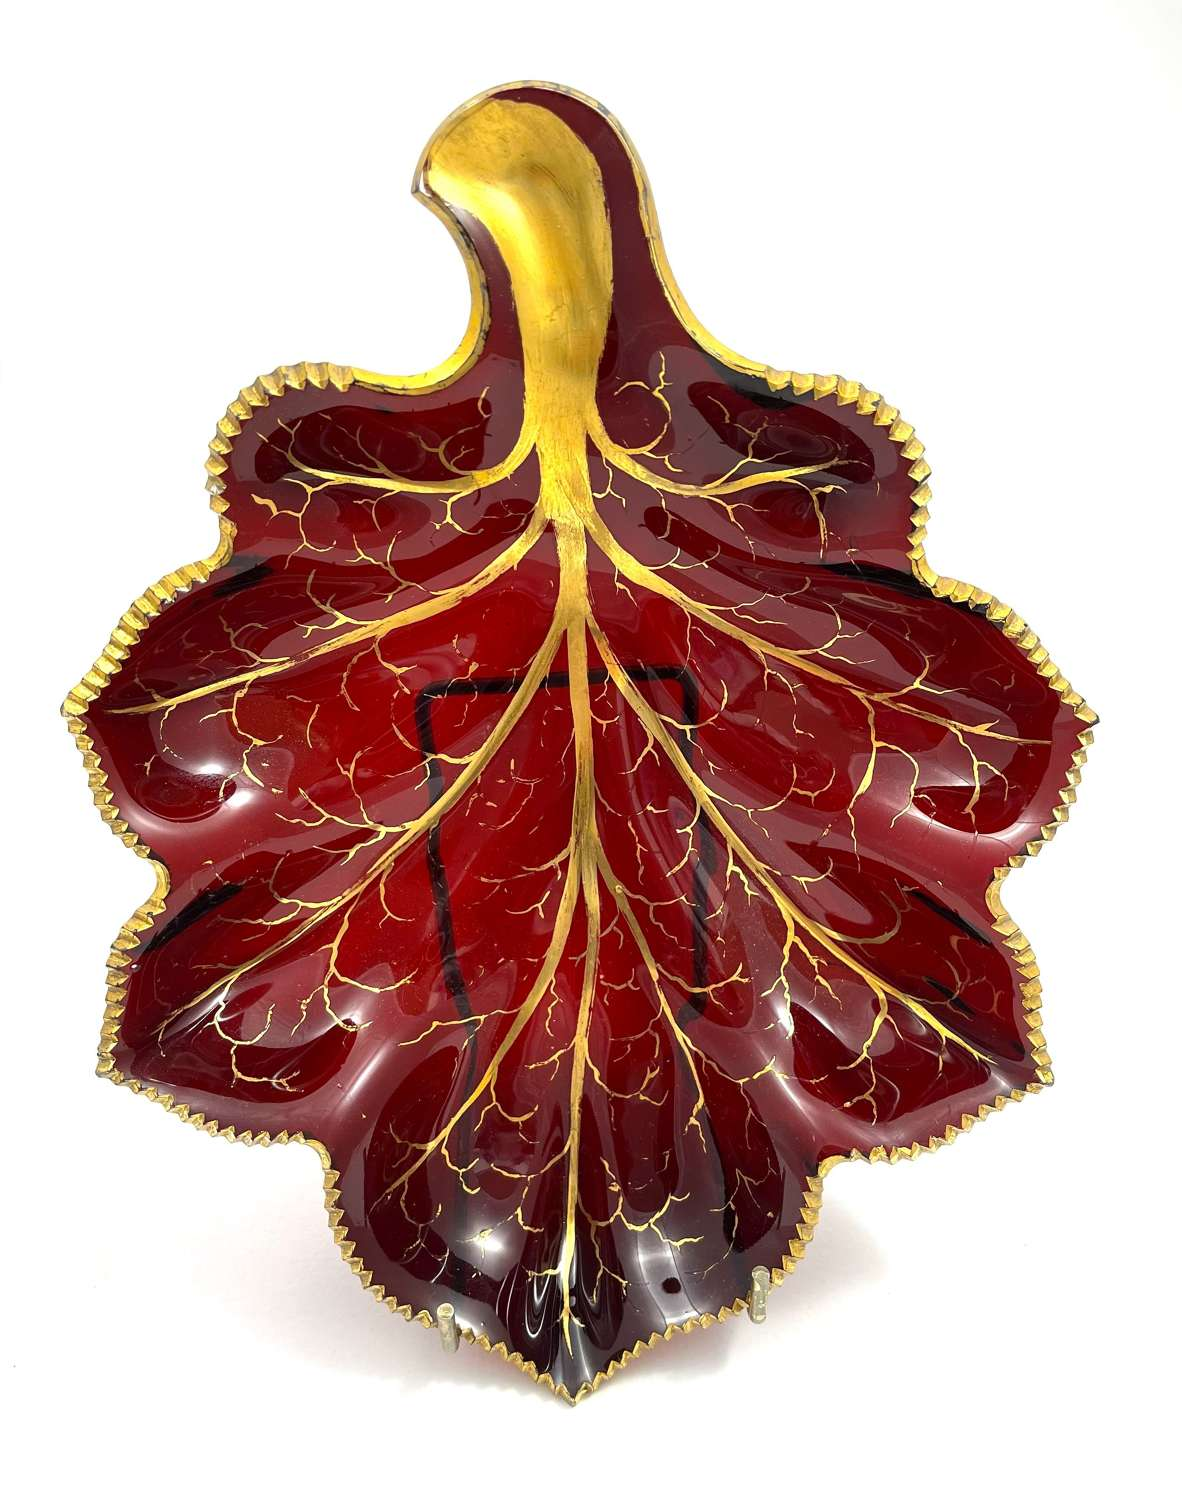 Antique Bohemian Red Glass Leaf Dish Highlighted in Gold.